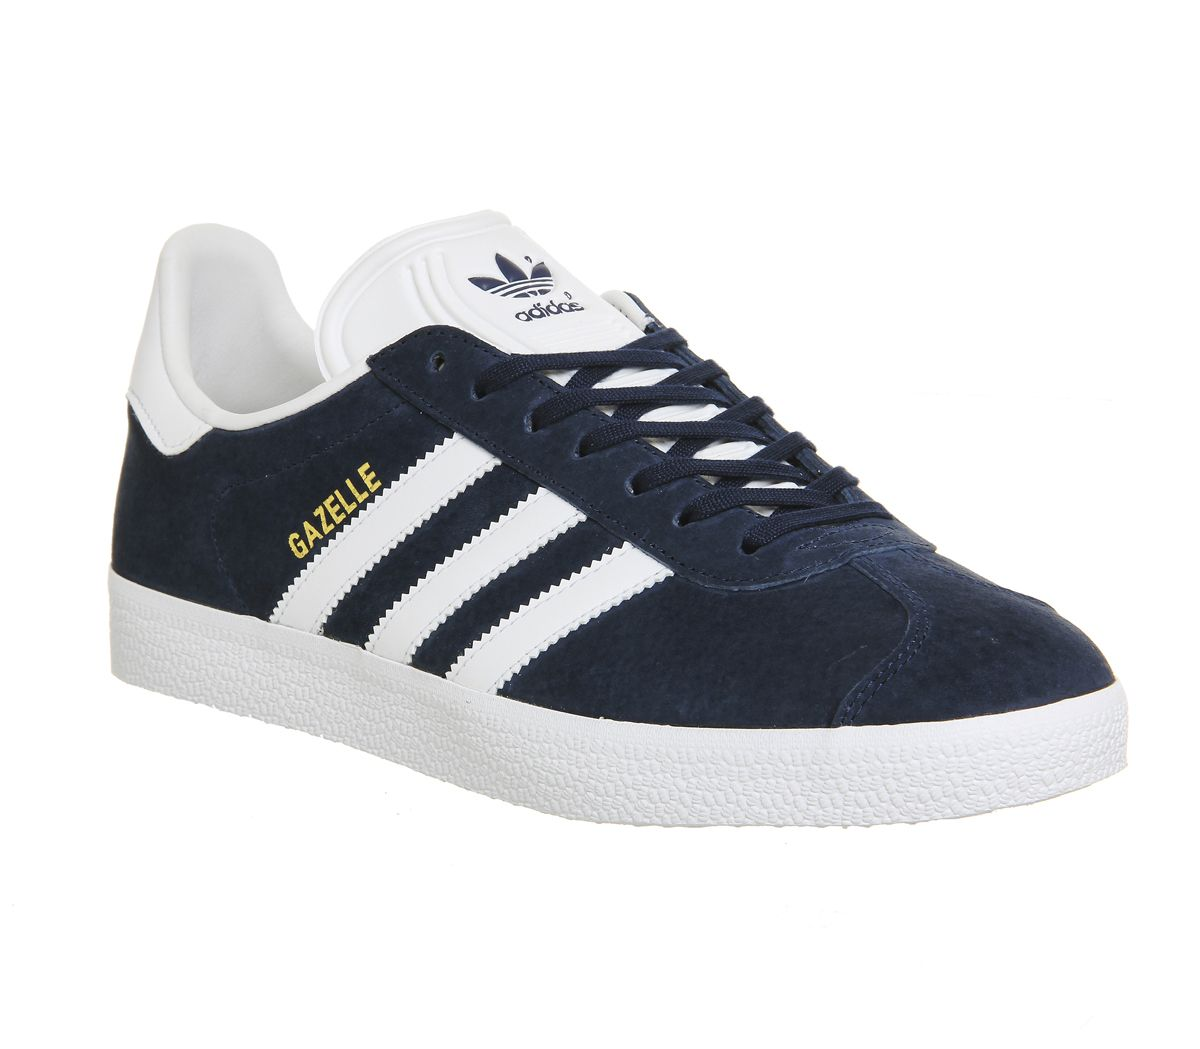 894c67c2cd395 adidas Gazelle Trainers Collegiate Navy White - His trainers